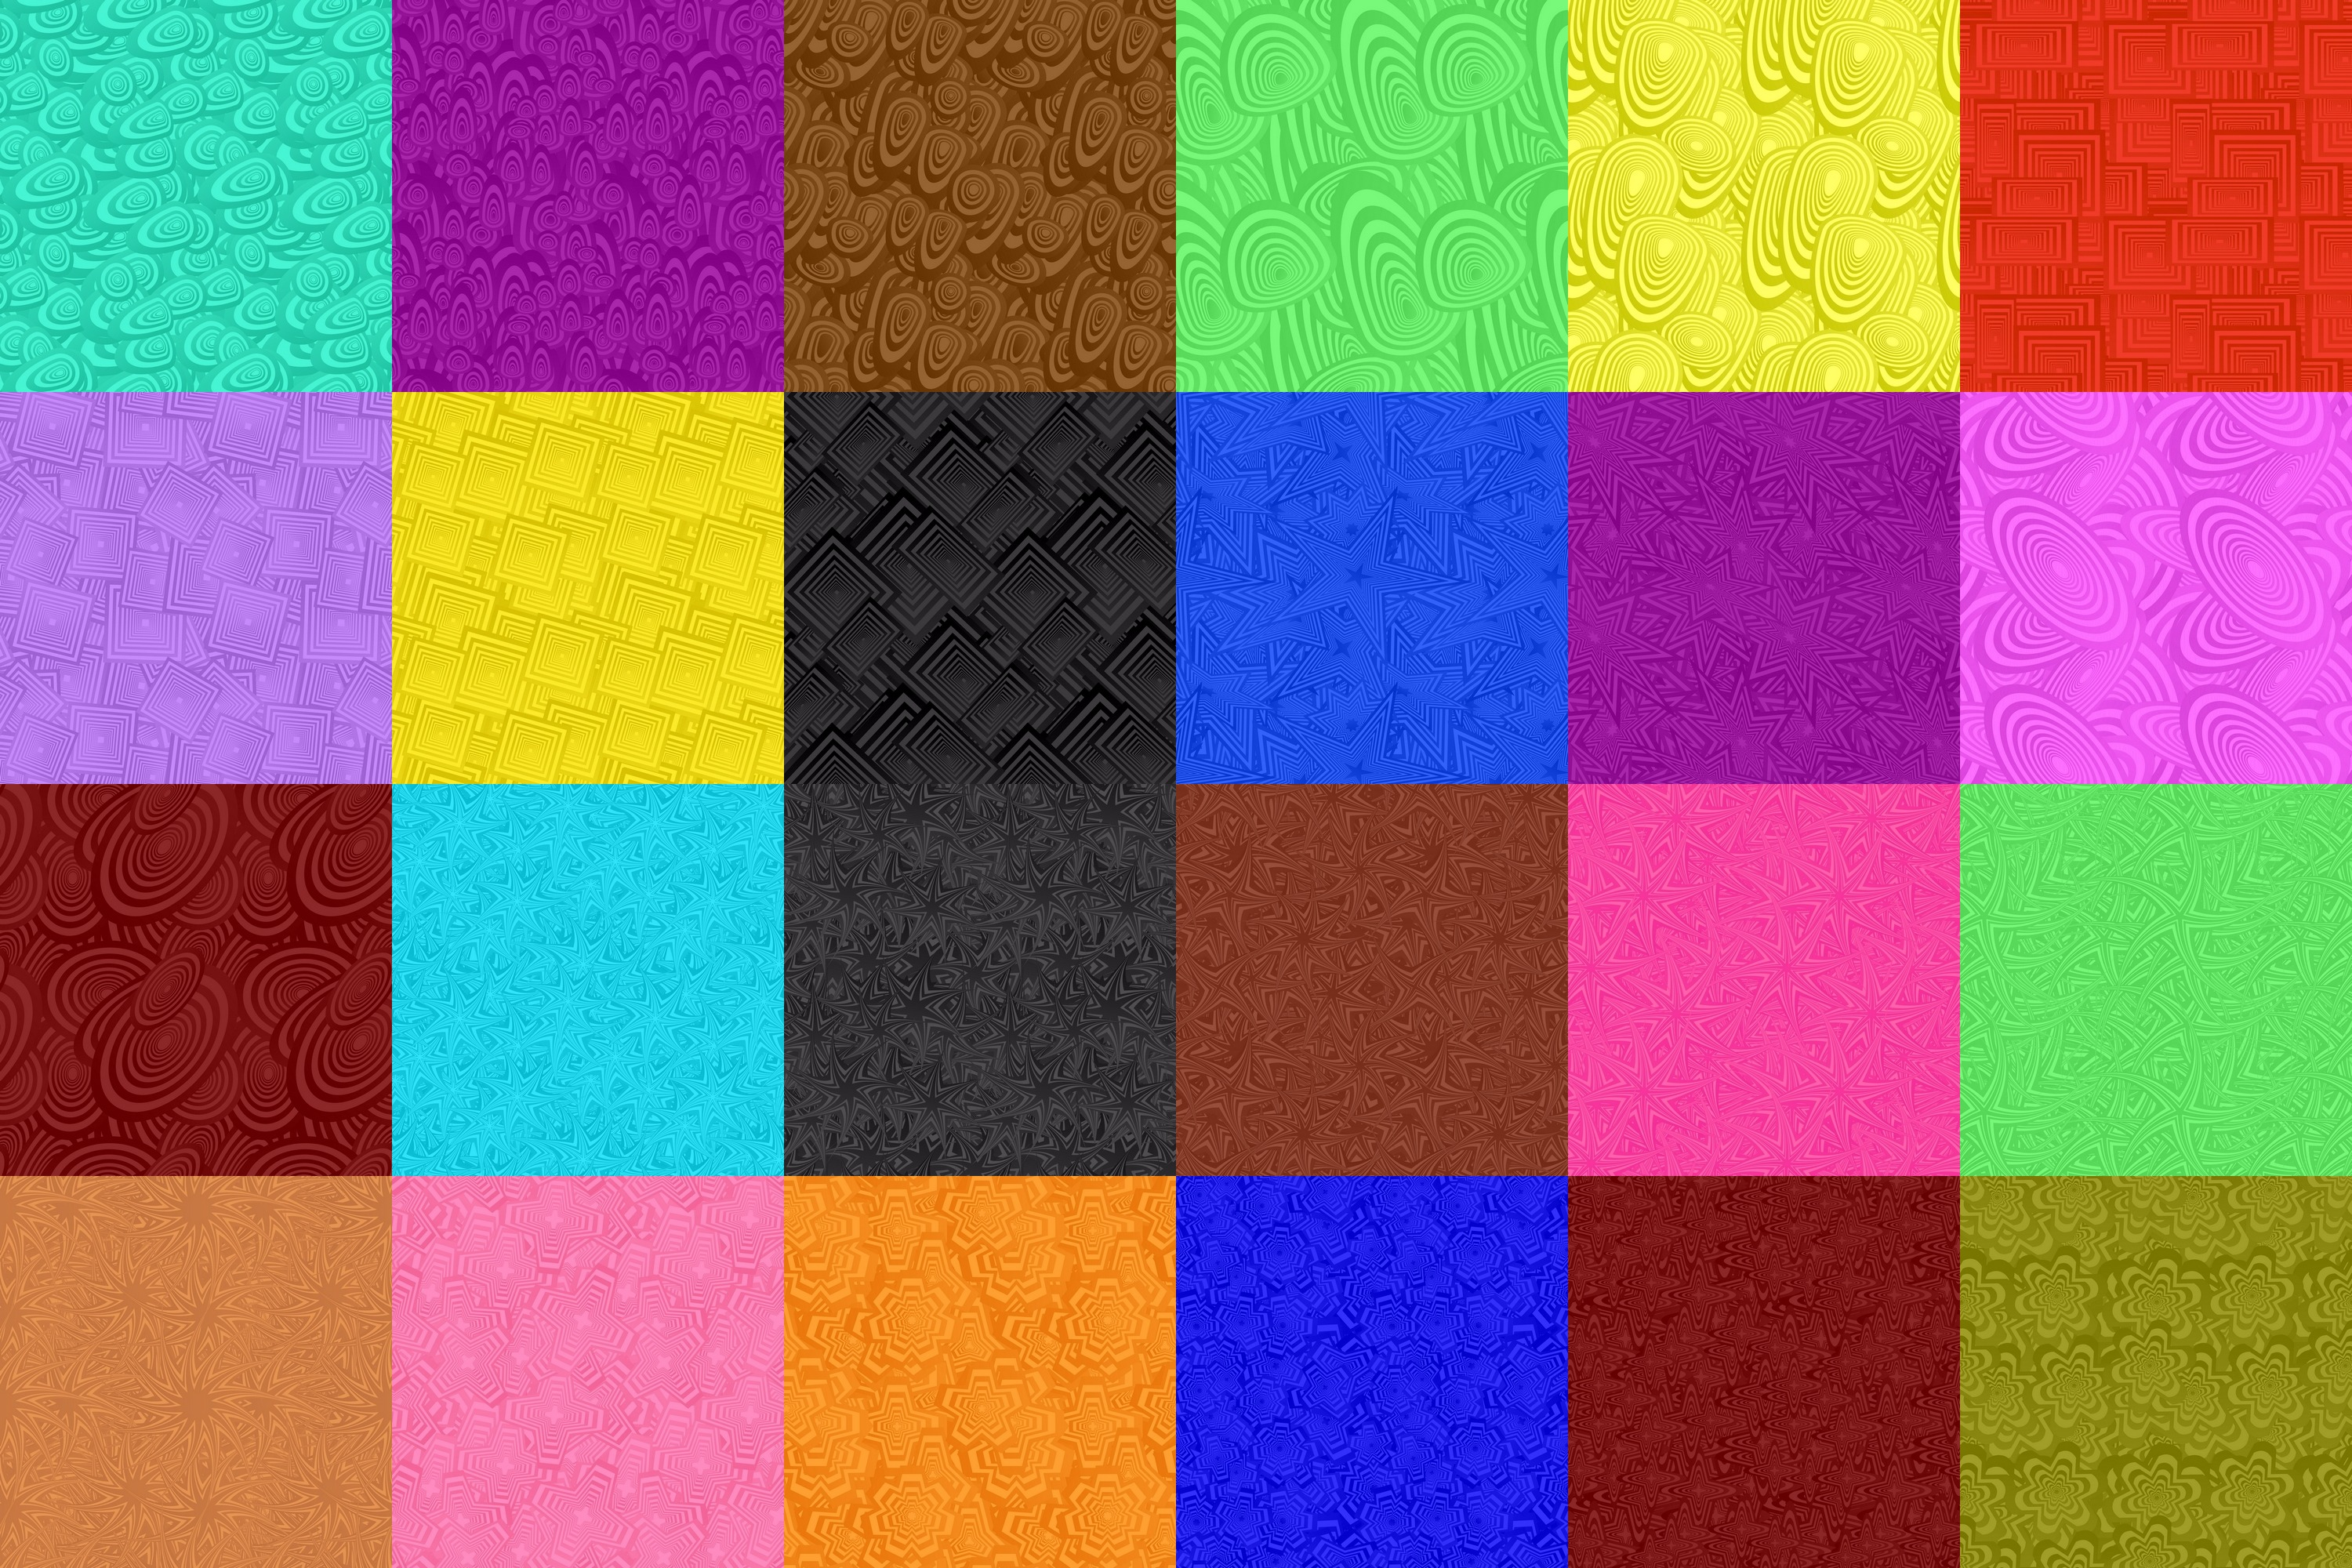 80 seamless pattern backgrounds - AI, EPS, JPG 5000x5000 example image 3